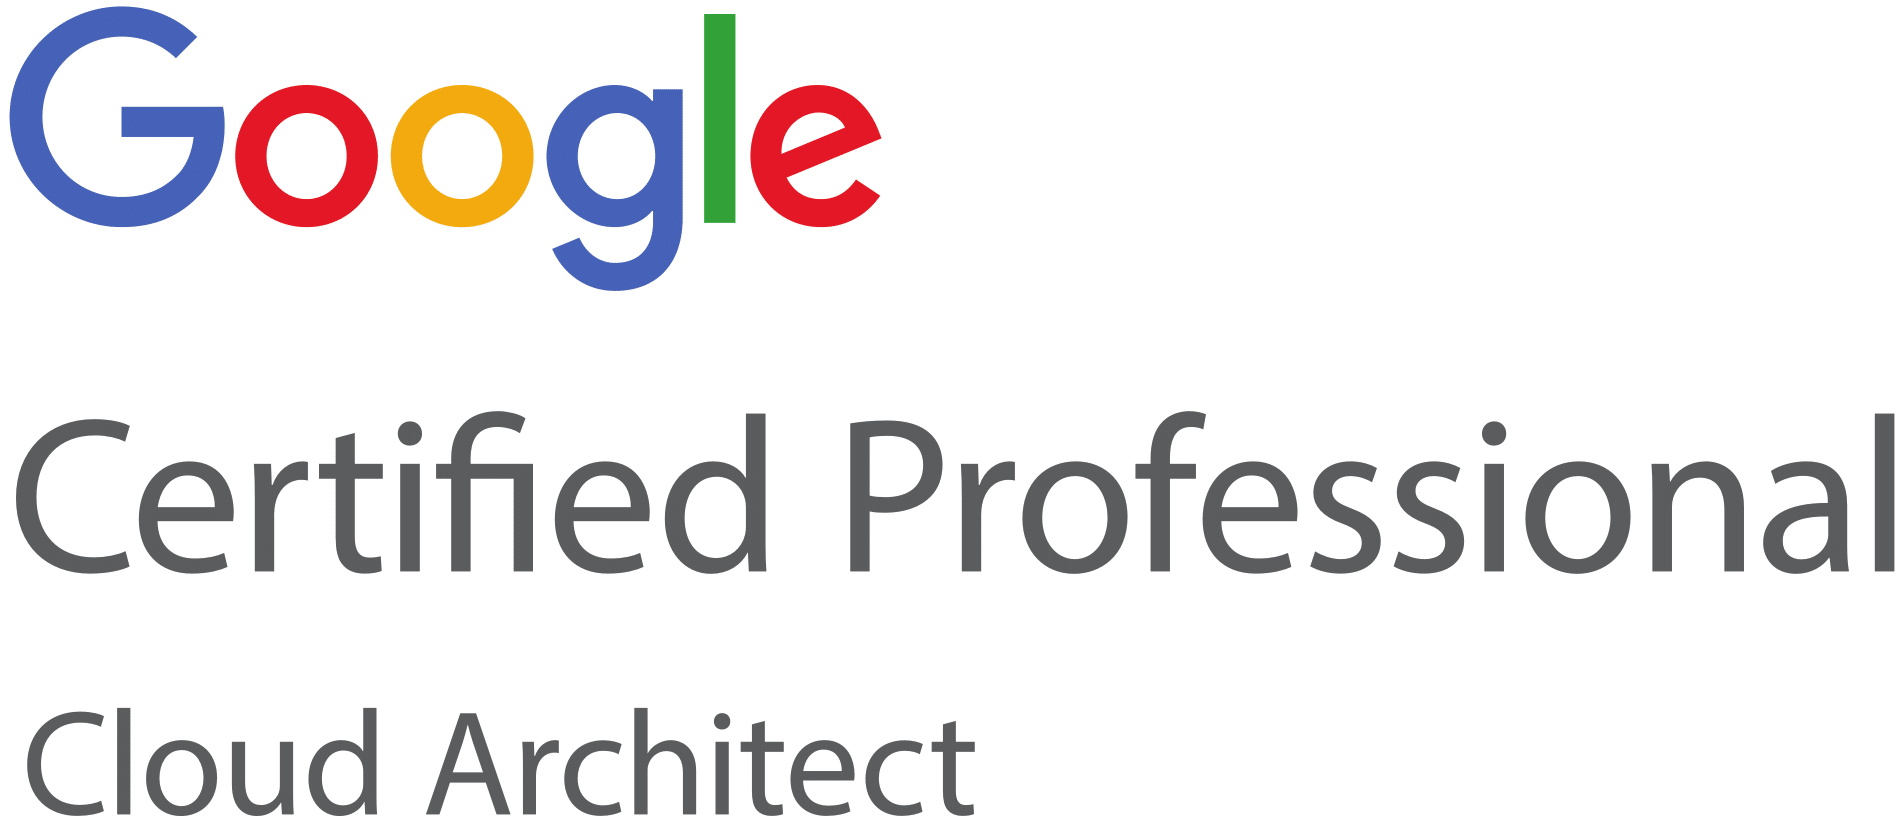 Google Certified Professional